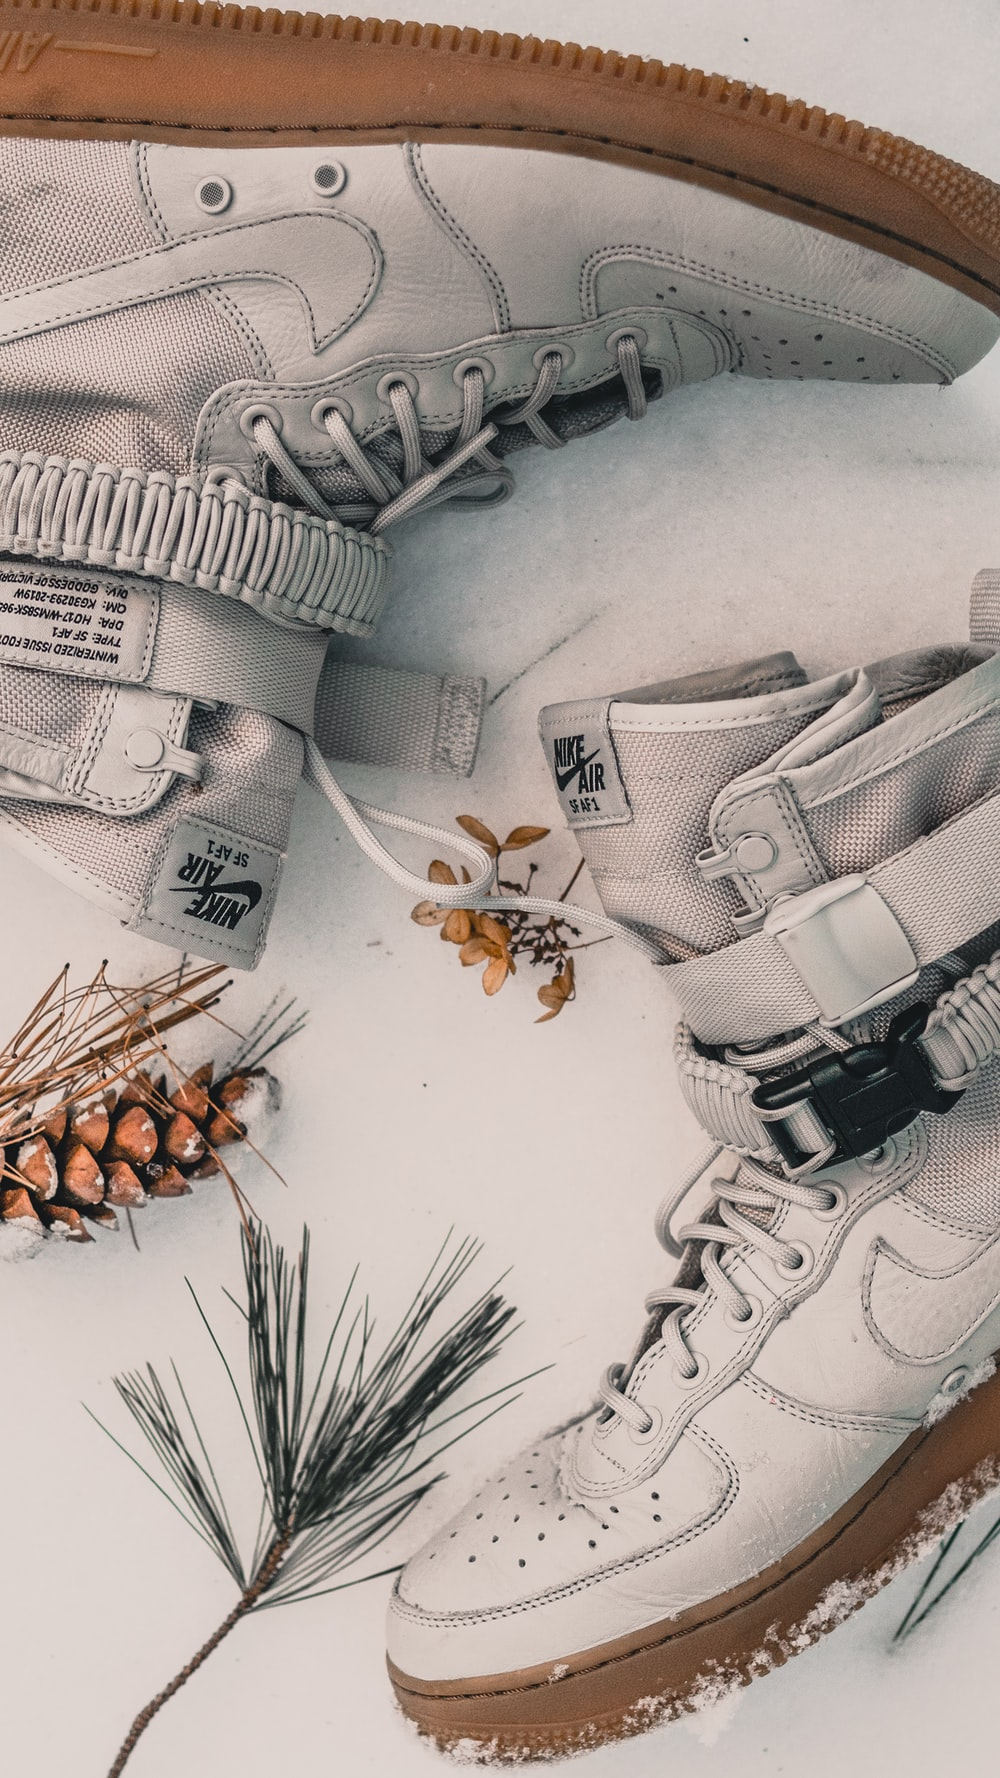 Nike Air Pictures Download Free Images On Unsplash